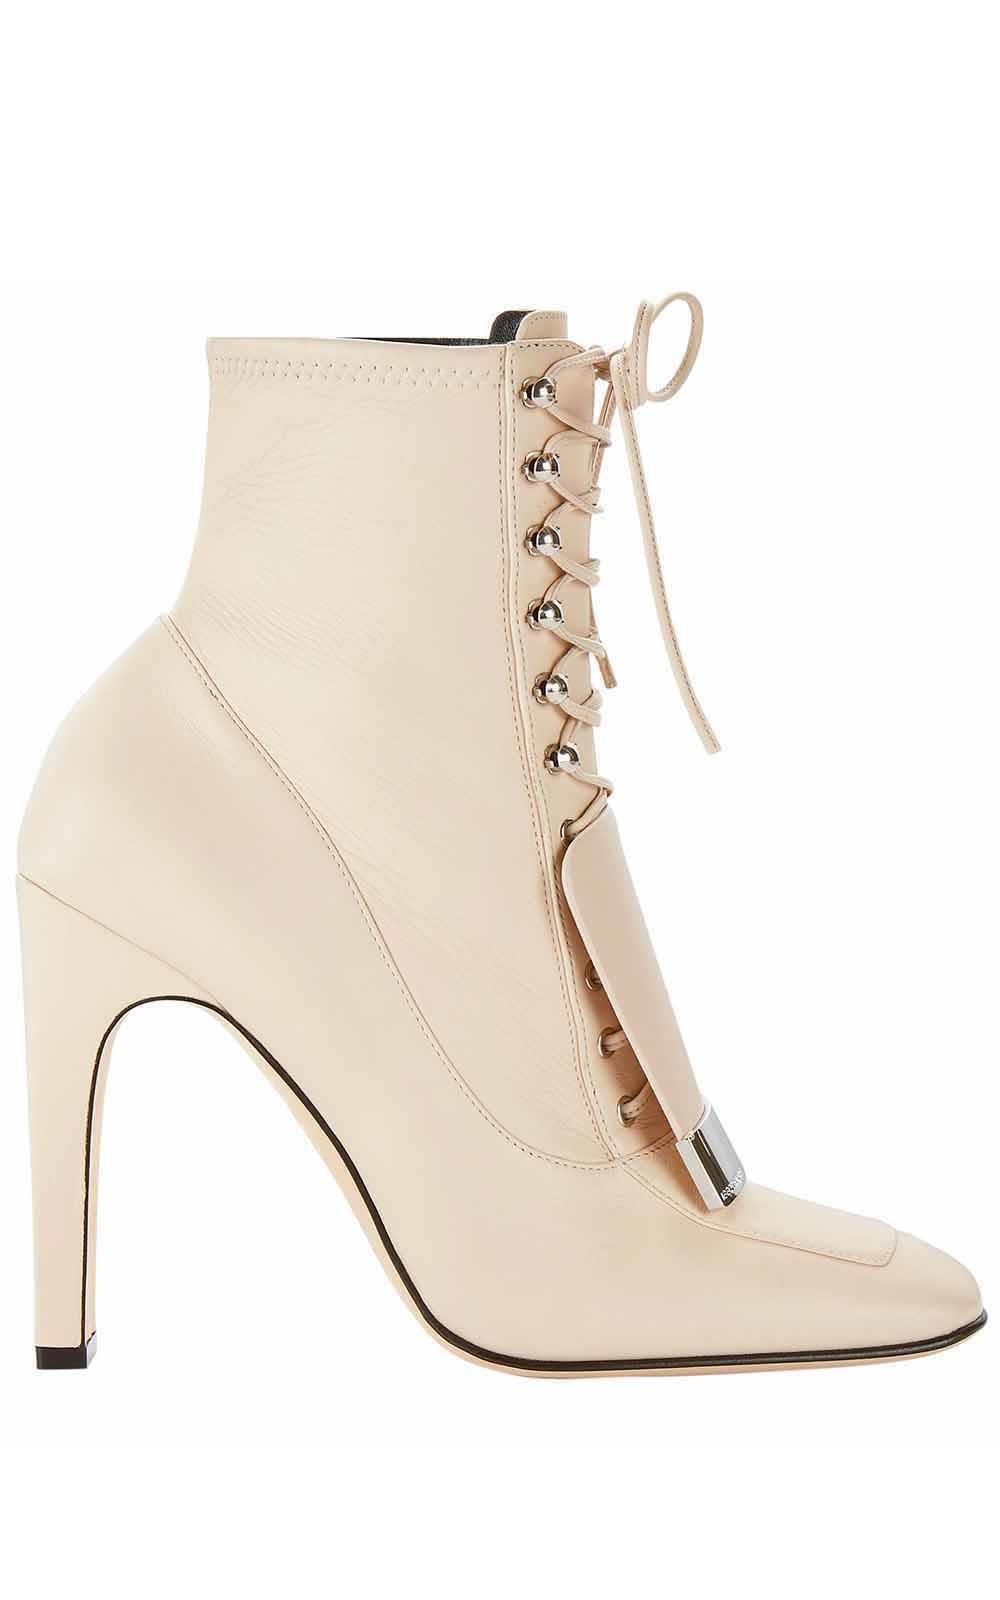 Sergio Rossi Sr1 Lace-Up Leather Booties In Bianco